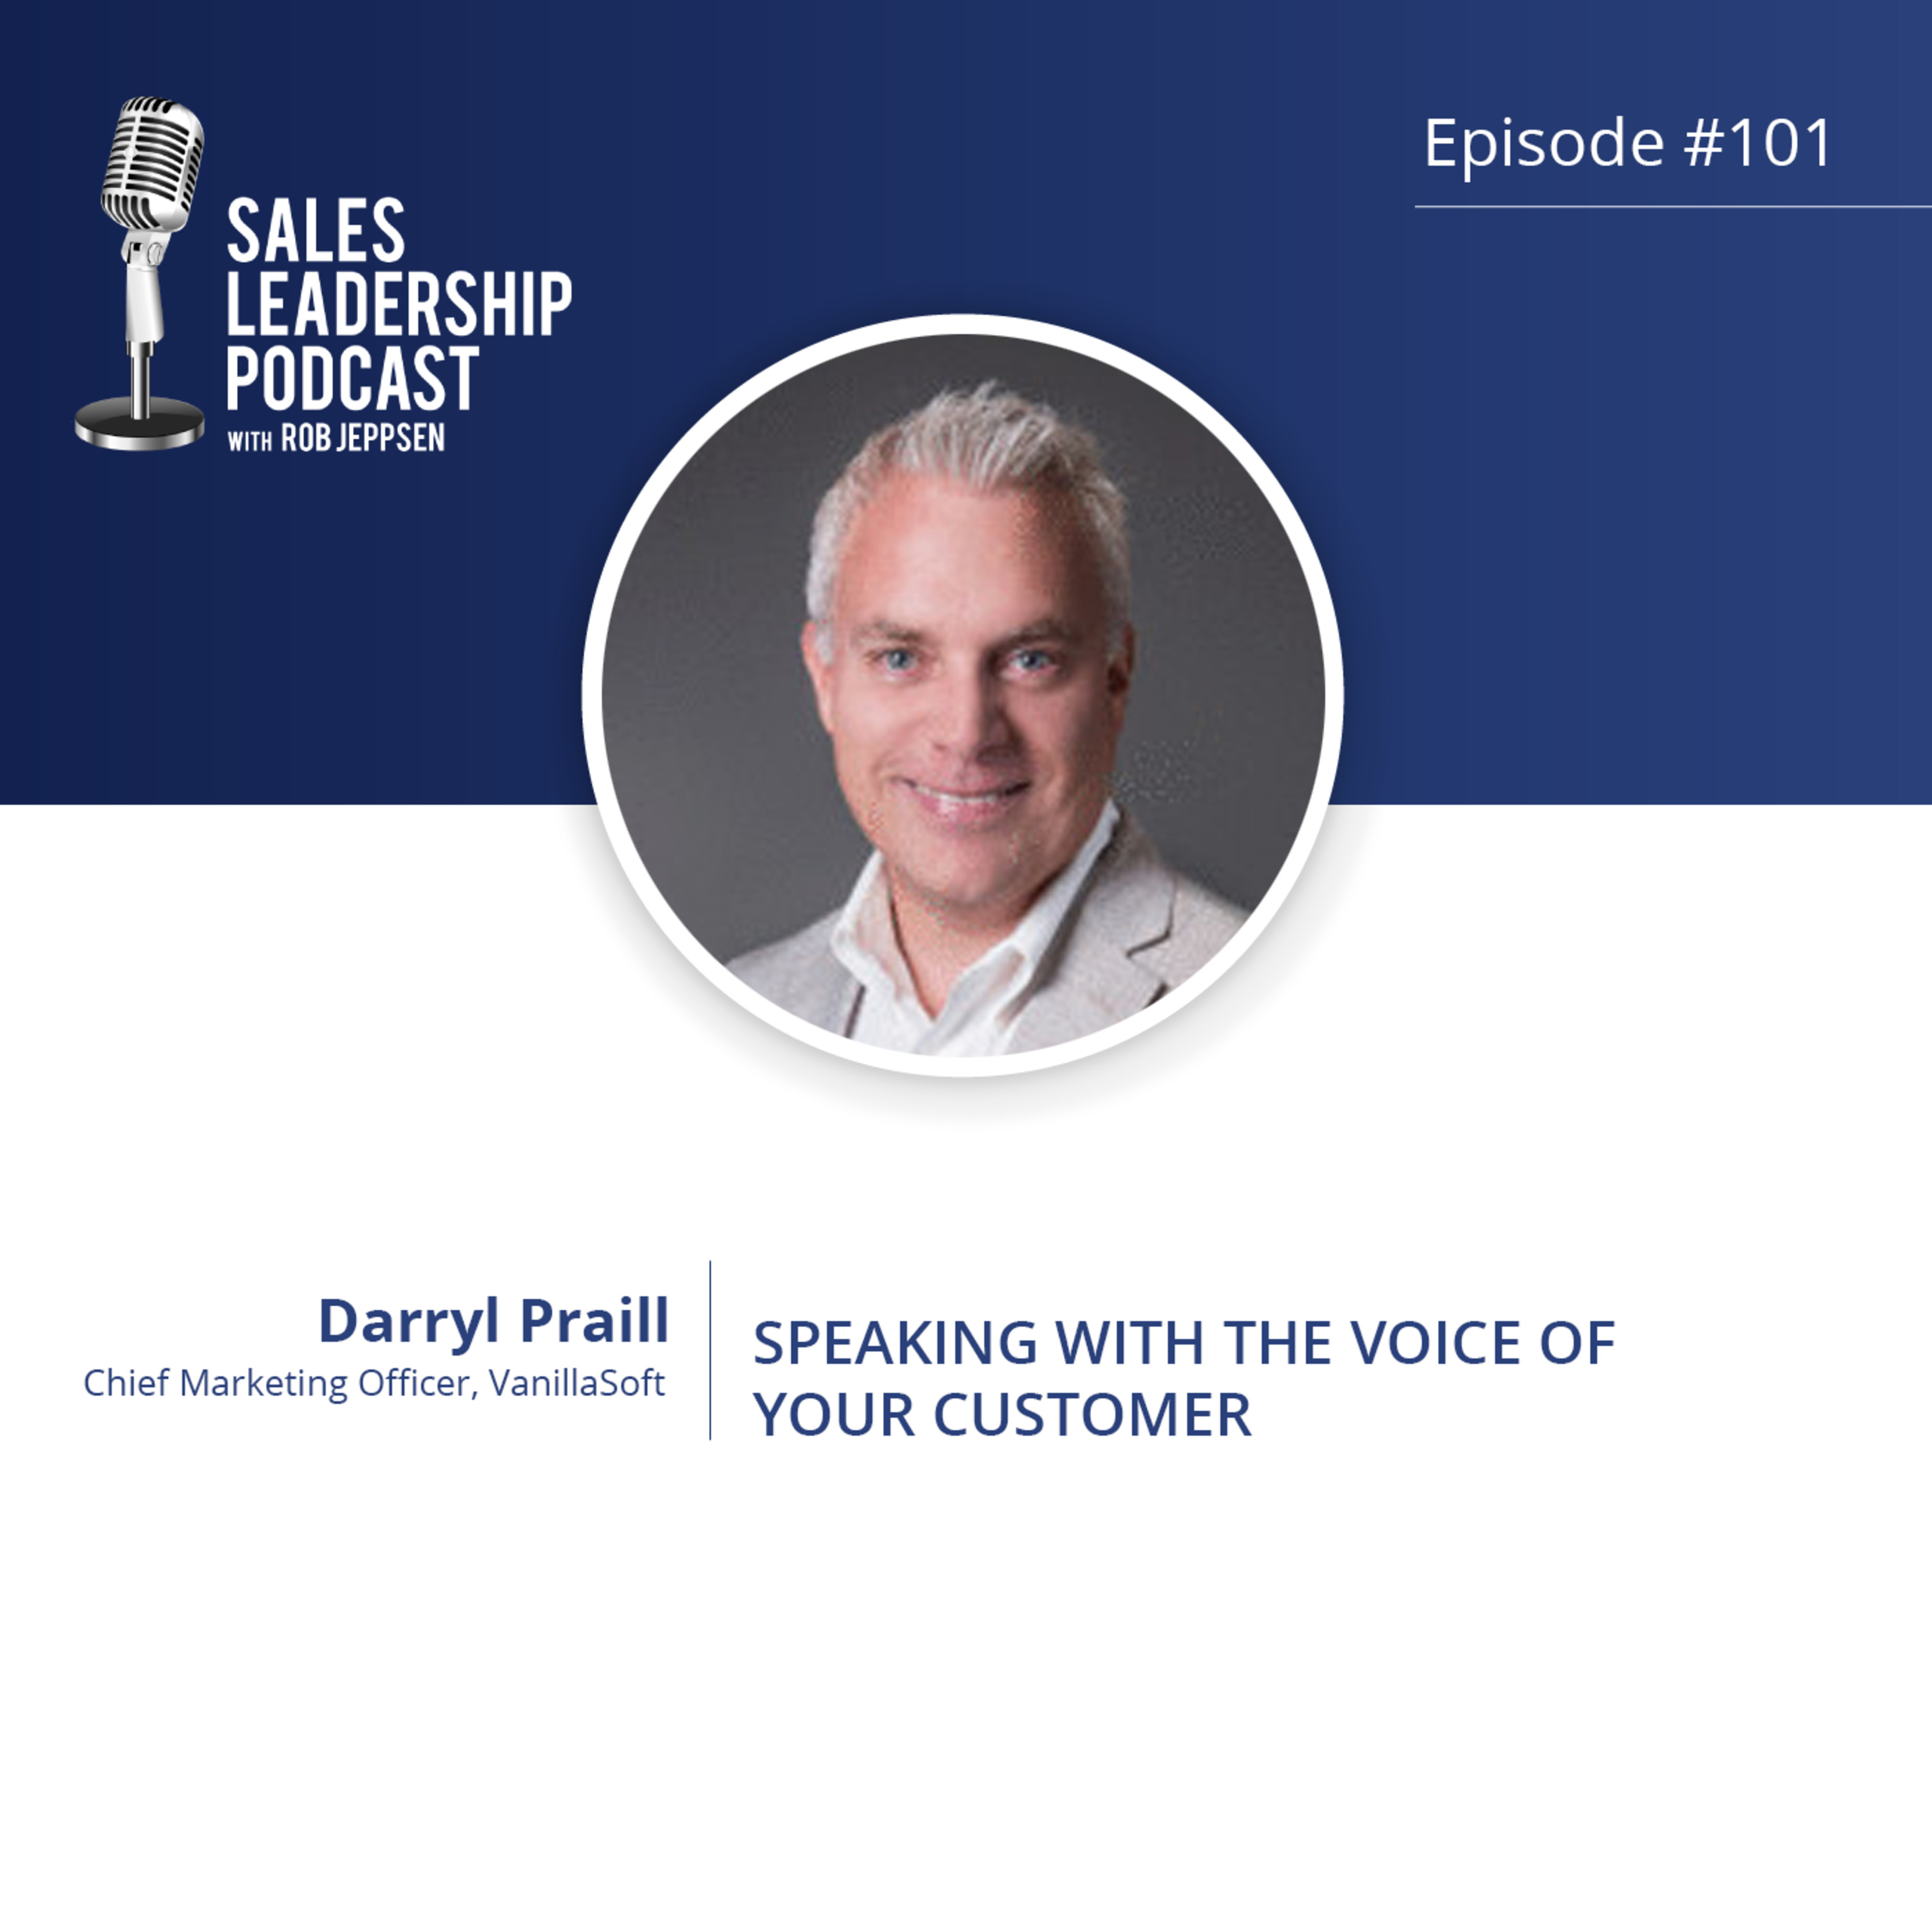 Episode 101: #101: Darryl Praill of VanillaSoft — Speaking With the Voice of Your Customer